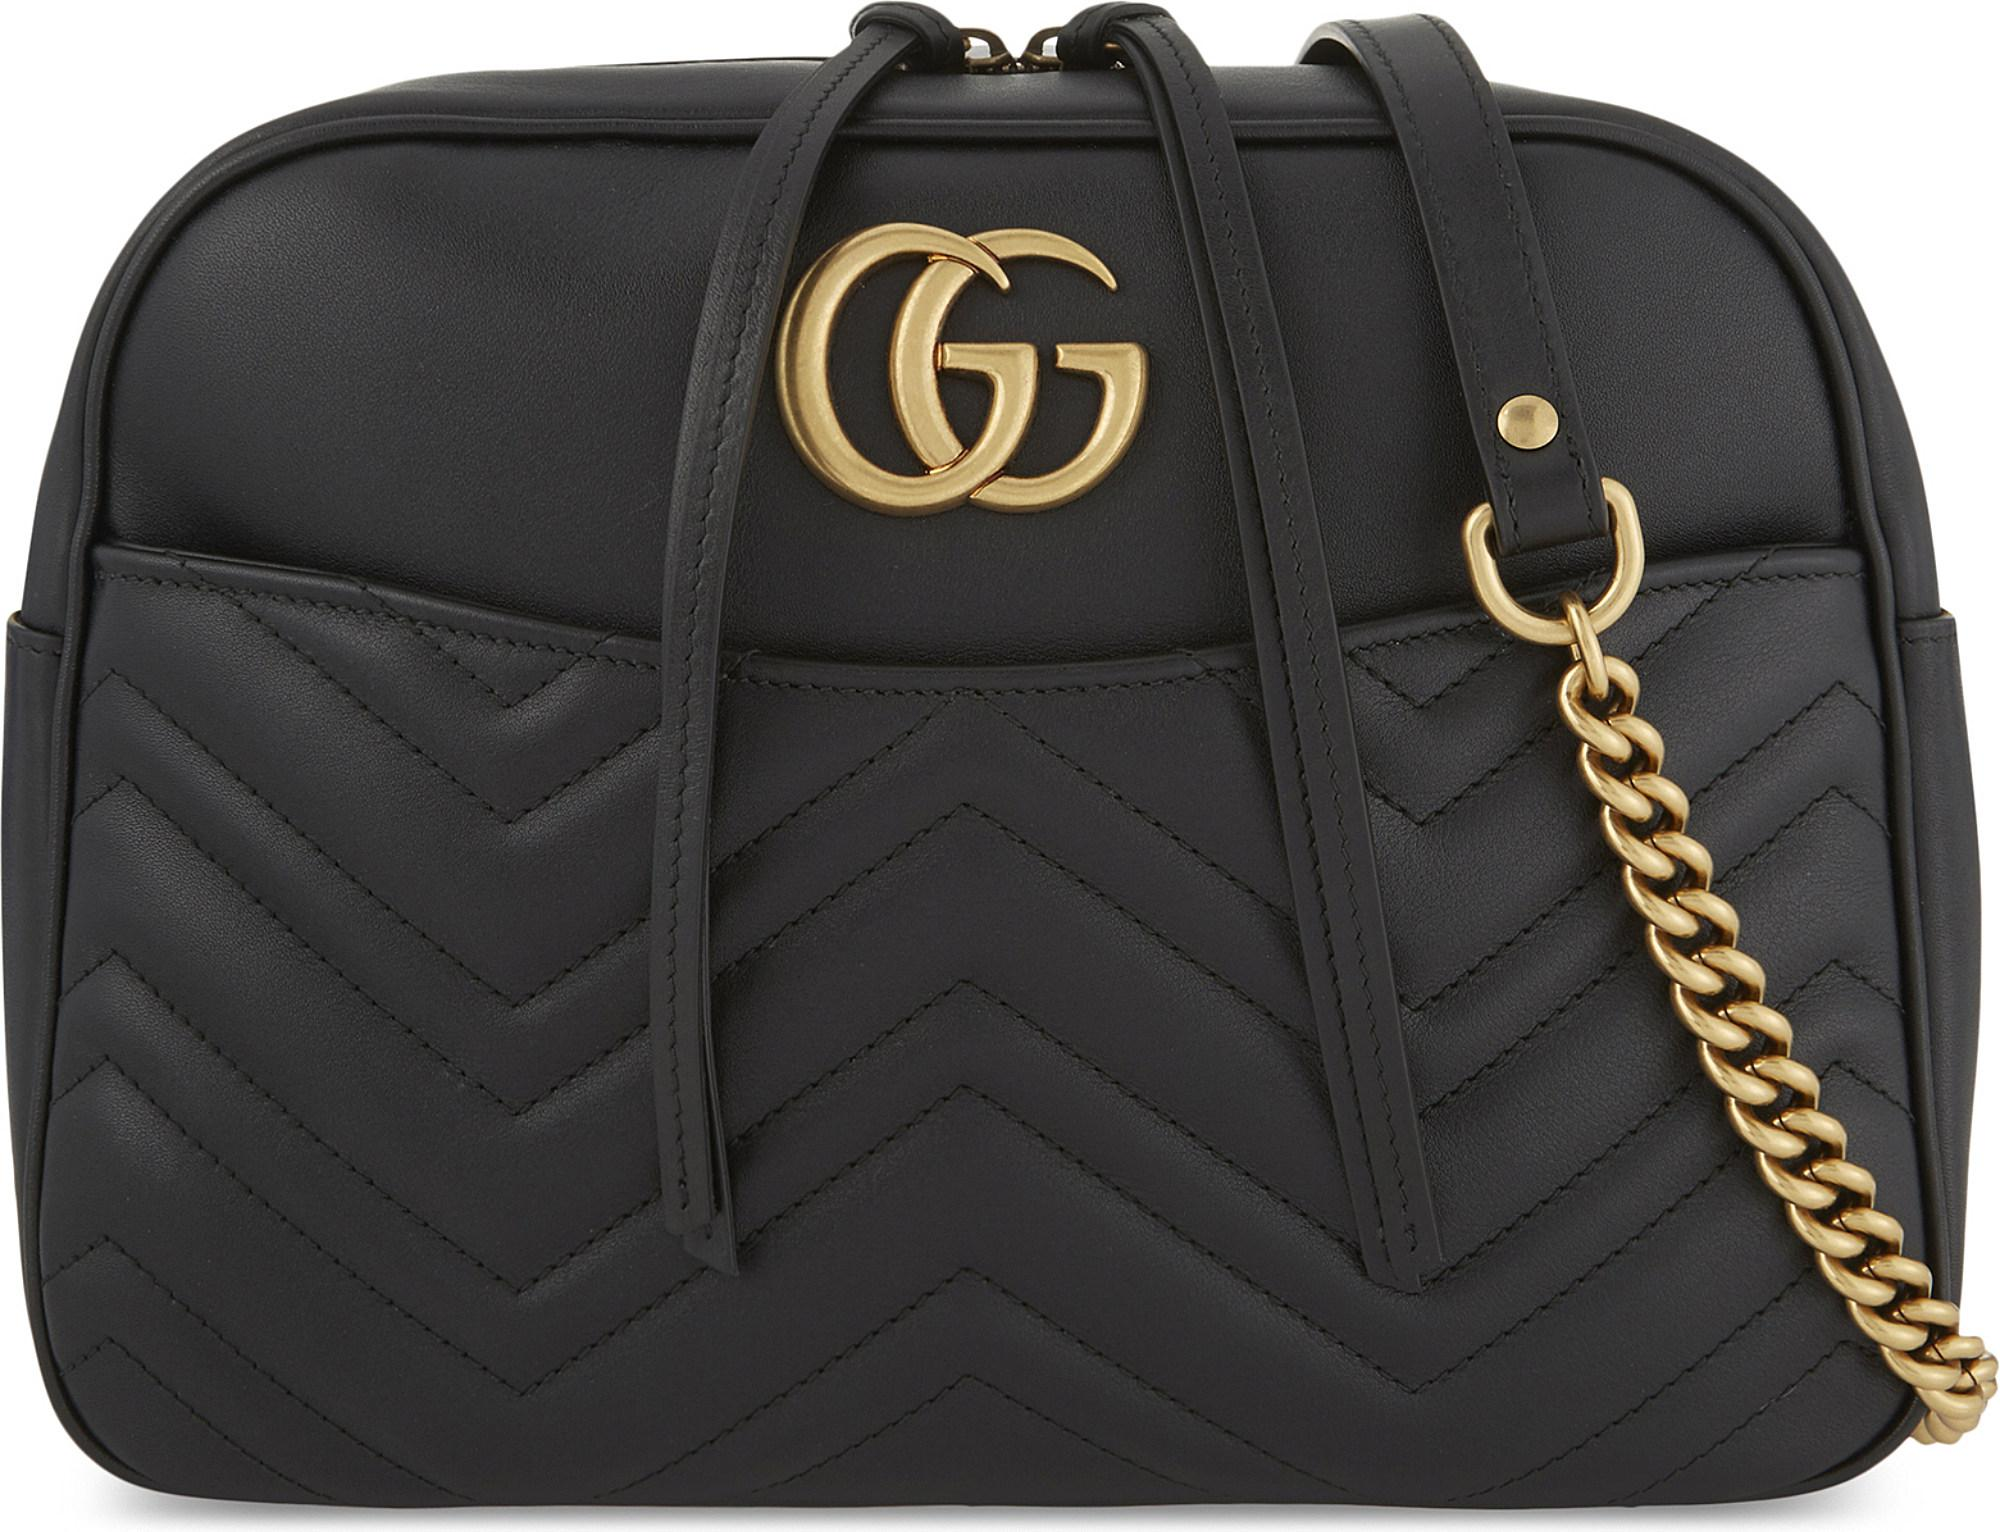 Lyst - Gucci GG Marmont Medium Quilted Leather Shoulder Bag in Black 036ba0e9a452f